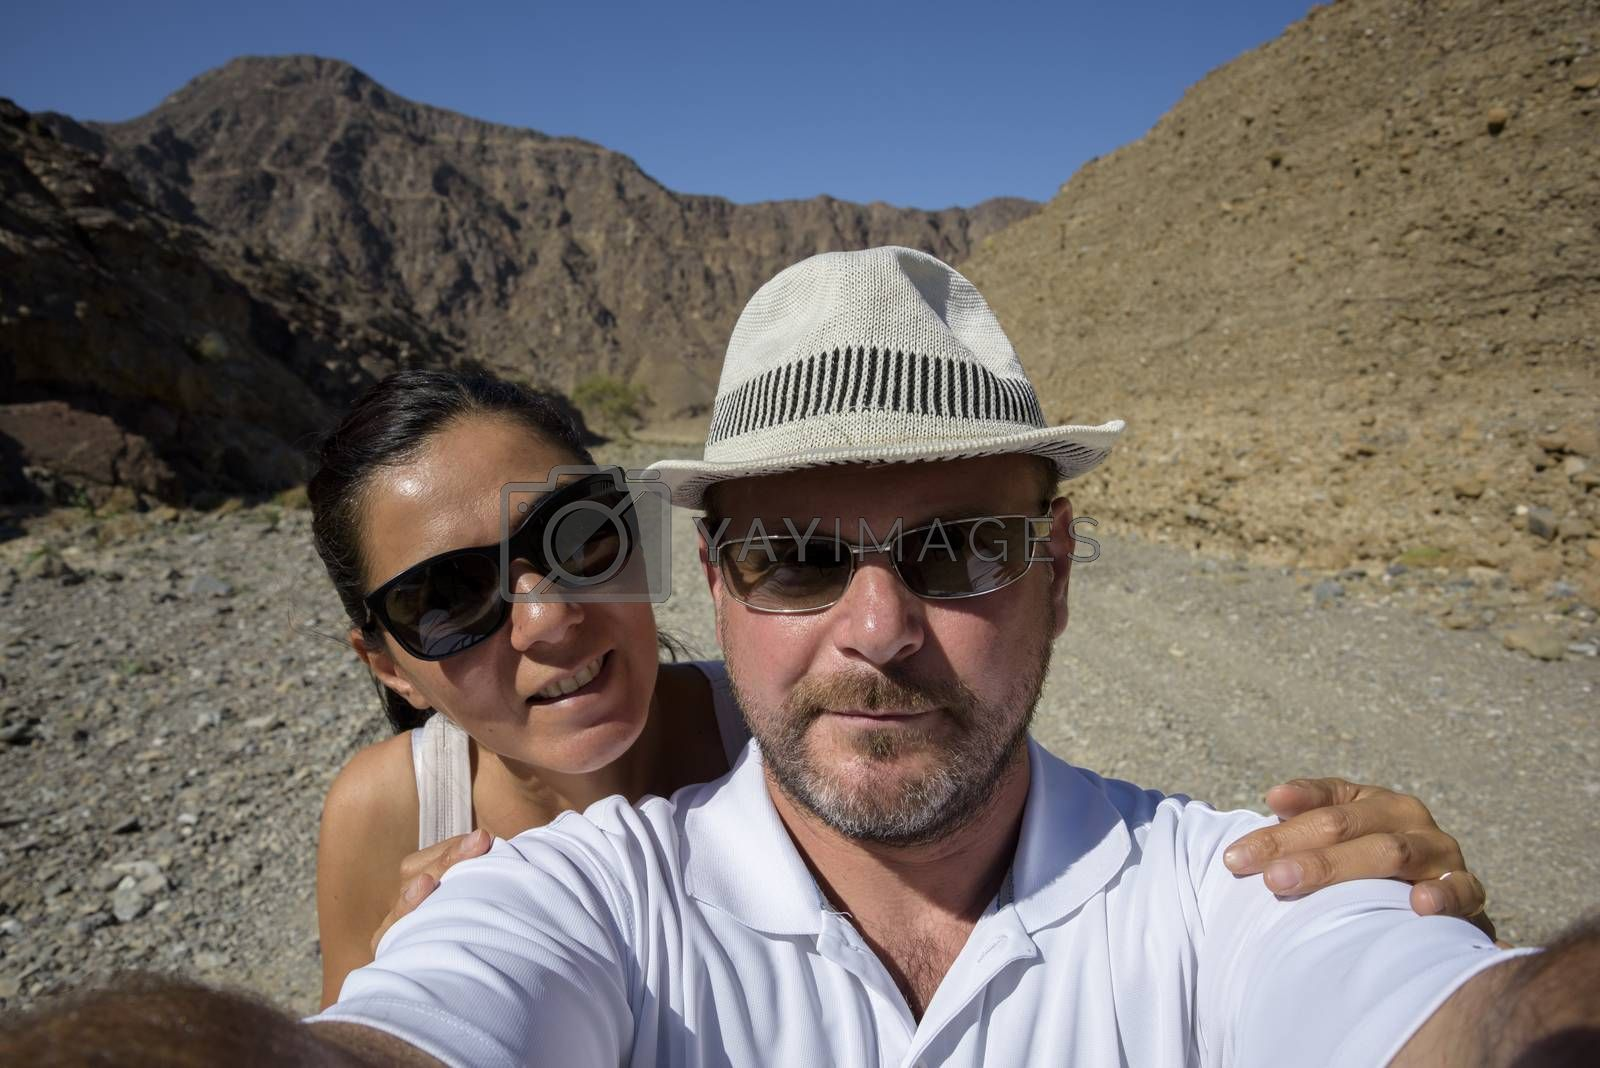 A couple in the 40s taking a selfie in a Wadi (dry riverbed) in the United Arab Emirates.